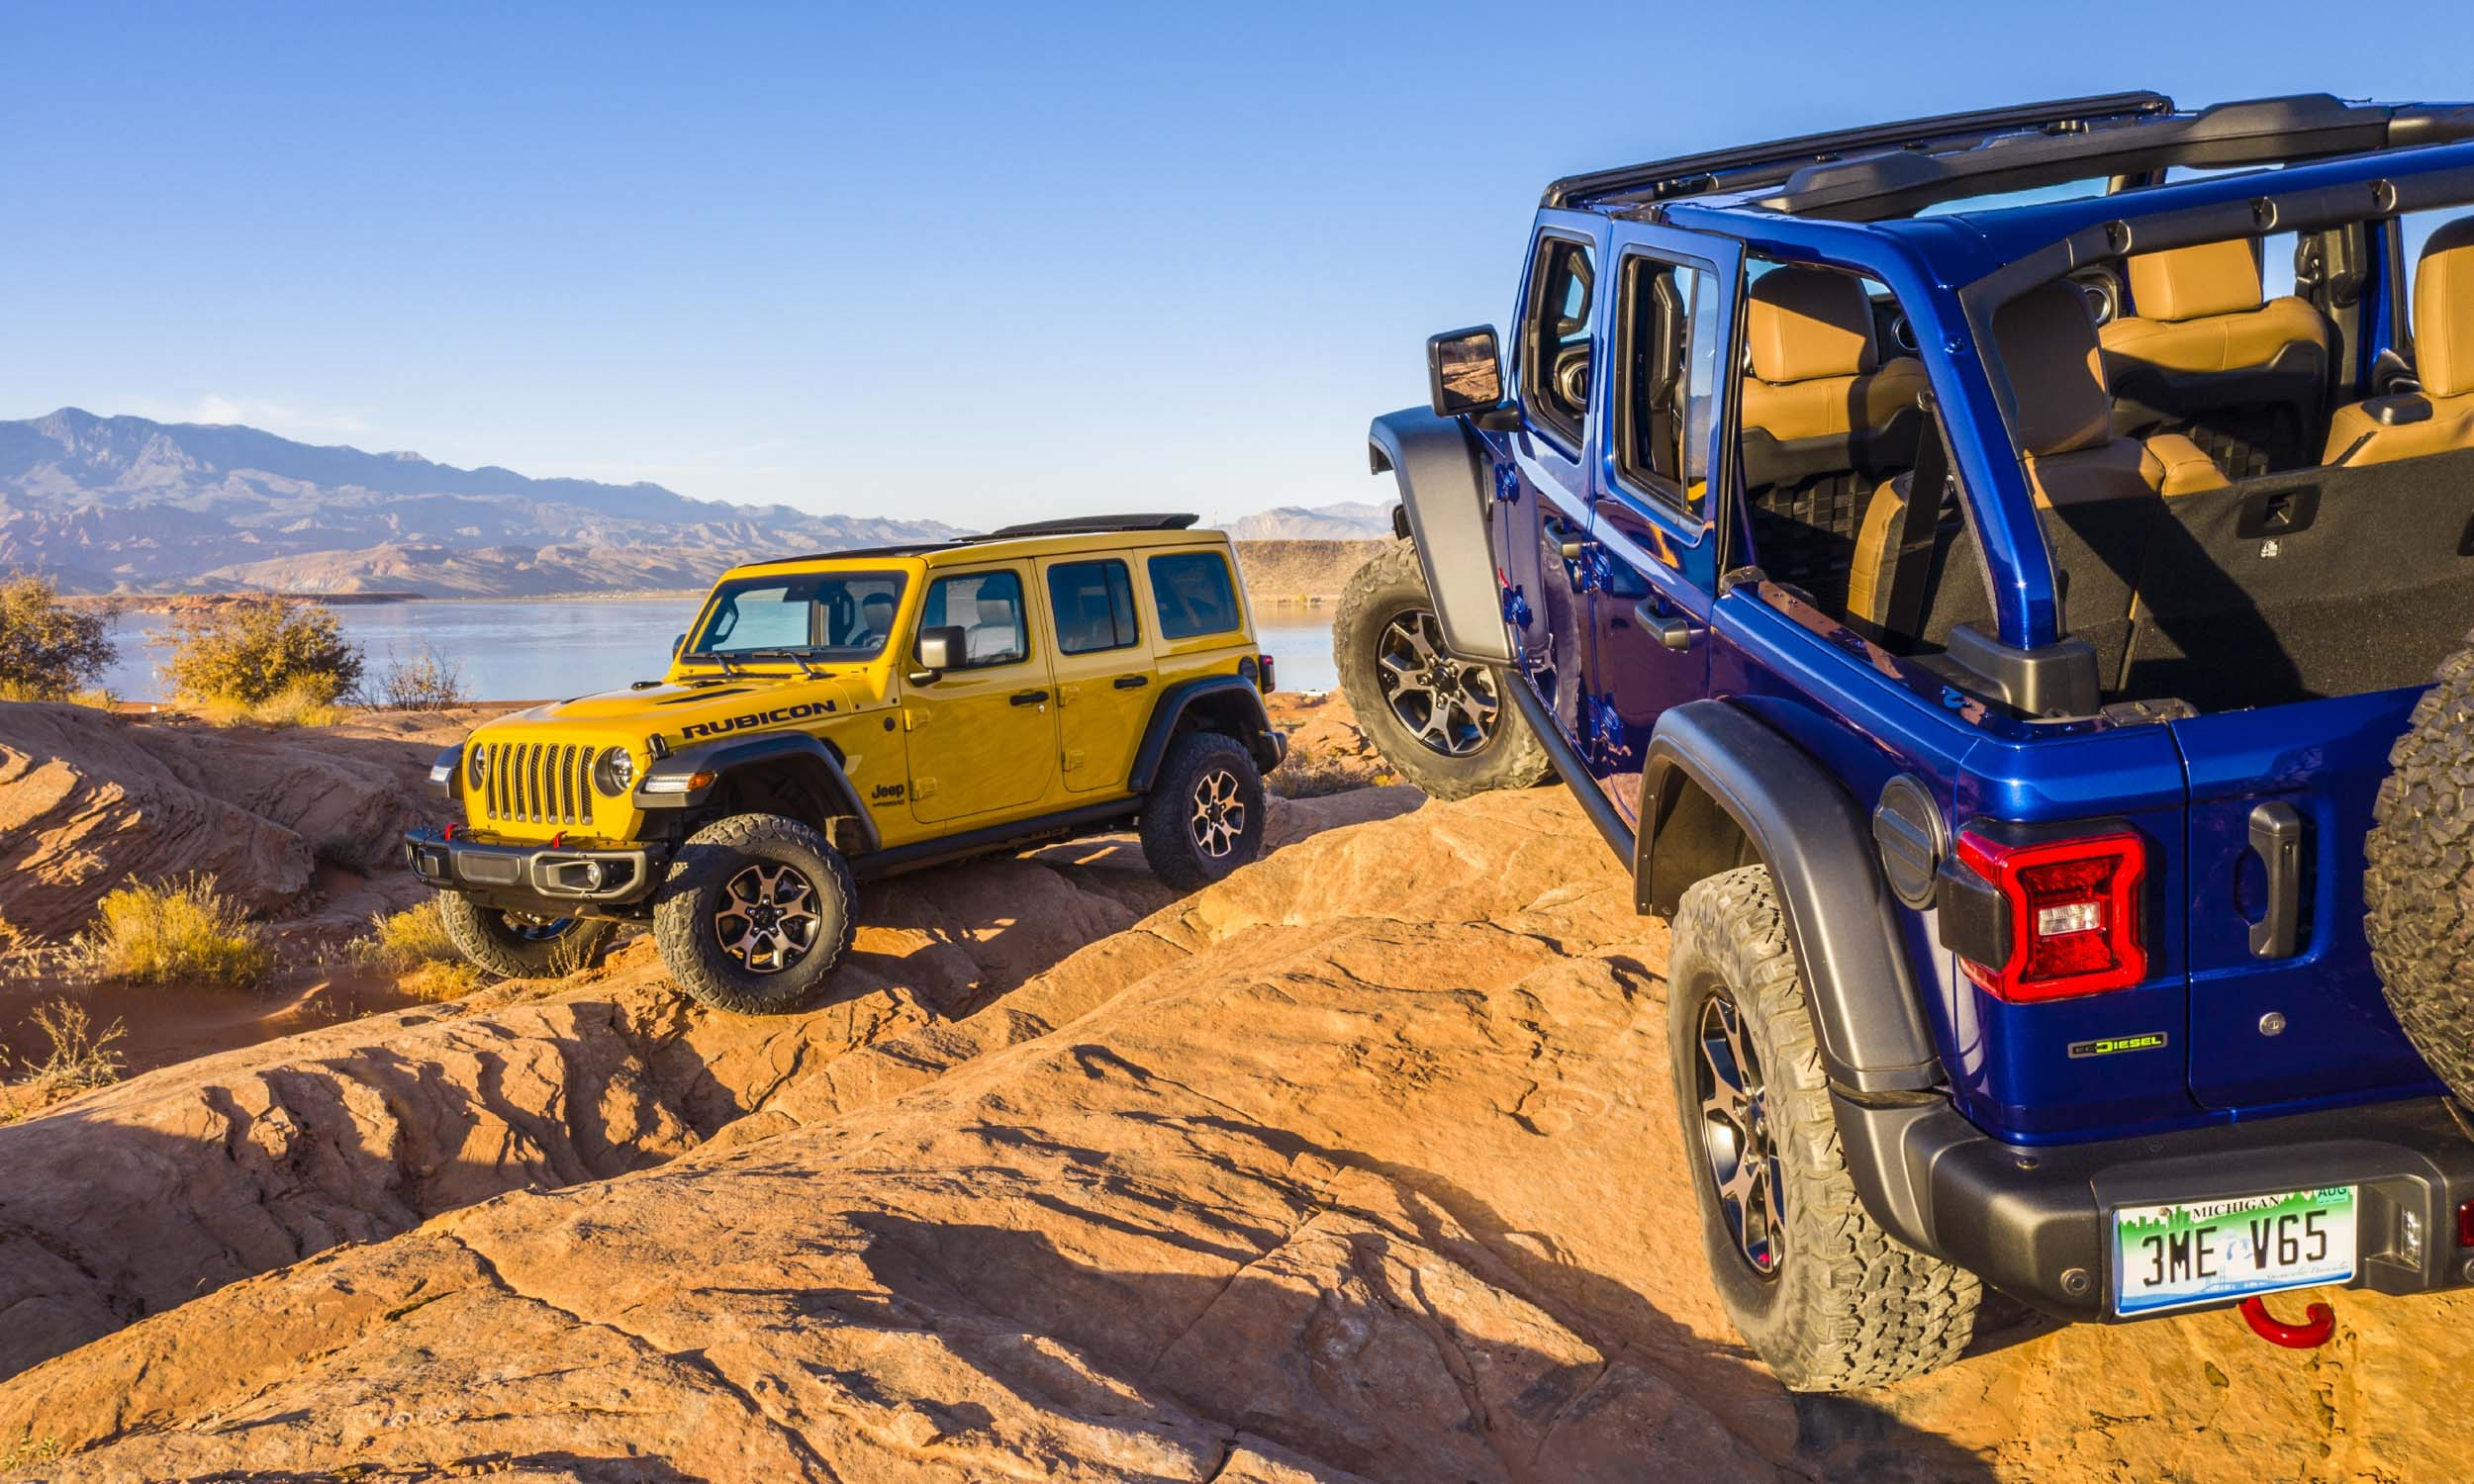 2021 Jeep Wrangler Jeep offers the 2021 Wrangler in five trim levels: Sport, Sport S, Sahara, Rubicon and High Altitude, with Sahara and High Altitude offered exclusively as a 4-door Unlimited and the other three available in both 2-door and 4-door Unlimited versions. For 2021 Jeep will also add the plug-in hybrid Wrangler 4xe, high-performance Wrangler Rubicon 392 and two new limited editions: Islander and 80th Anniversary. For 2021 Jeep also offers Willys, Freedom, Sport Altitude and Sahara Altitude limited edition. Available powertrains included the 285-horsepower Pentastar V6, a new turbocharged 4-cylinder engine with eTorque technology producing 270 horsepower and 290 lb-ft of torque, a 3.6-liter V6 with mild-hybrid eTorque assist, and a 3.0-liter V6 EcoDiesel producing 260 horsepower and 442 lb-ft of torque. For 2021 Wrangler offers the TrailCam forward-facing off-road camera with an 8.4-inch touchscreen that can be accessed through available Off-road Pages. 2021 Jeep Wrangler 4xe In September 2020 Jeep announced a new plug-in hybrid Wrangler 4xe with electric-only mode — including while off-road — with the same off-pavement capabilities as its non-electric siblings. Wrangler 4xe is powered by a 2.0-liter turbocharged 4-cylinder gas engine and two electric motors for a total output of 375 horsepower and 470 lb-ft of torque. Wrangler 4xe EPA fuel-economy ratings have not been released, although Jeep estimates 50 MPGe in electric mode and an electric-only range of about 25 miles. All high-voltage electronics that connect the battery to the powertrain are sealed and waterproof, ensuring that Wrangler can still navigate up to 30 inches of water without any danger of short circuiting. 2021 Jeep Wrangler Rubicon 392 In November 2020 Jeep announced the 2021 Wrangler Rubicon 392, the first Wrangler powered by a V8 engine since 1981. In the '80s Wrangler's 5.0-liter V8 produced a mere 125 horsepower. Fast-forward 40 years and Wrangler Rubicon 392 gets a 6.4-liter 392-cubic-inch V8 producing 470 horsepower and 470 lb-ft of torque, paired with an 8-speed automatic transmission. According to Jeep, Rubicon 392 will accelerate from zero to 60 mph in 4.5 seconds and complete the quarter mile in 13 seconds. Rubicon 392 is lifted one inch higher than the standard Rubicon and features 17-inch bronze wheels with a beadlock option and 33-inch off-road tires. Jeep's Selec-Trac four-wheel-drive system is standard and heavy-duty front and rear Dana 44 axles with electronic locking differentials add to the impressive capability. 2021 Jeep Wrangler 80th Anniversary To commemorate the 80th anniversary of Jeep, a Wrangler 80th Anniversary has Granite exterior accents including the grille surround, fog light bezels and badges; 18-inch Granite Crystal aluminum wheels; all-terrain tires; body-color fender flares; and a three-piece black hardtop. Inside, Wrangler Anniversary features Granite Crystal accents, Uconnect 4C NAV with an 8.4-inch touchscreen, an Alpine premium audio system and optional leather seats. Jeep also adds Wrangler Islander, a beach-themed limited edition with exterior and interior details that include a Tiki decal on the hood, 17-inch wheels with silver finish, 32-inch all-terrain tires, rock rails, embroidered Tiki logo on front seat and Surf Blue accent stitching.